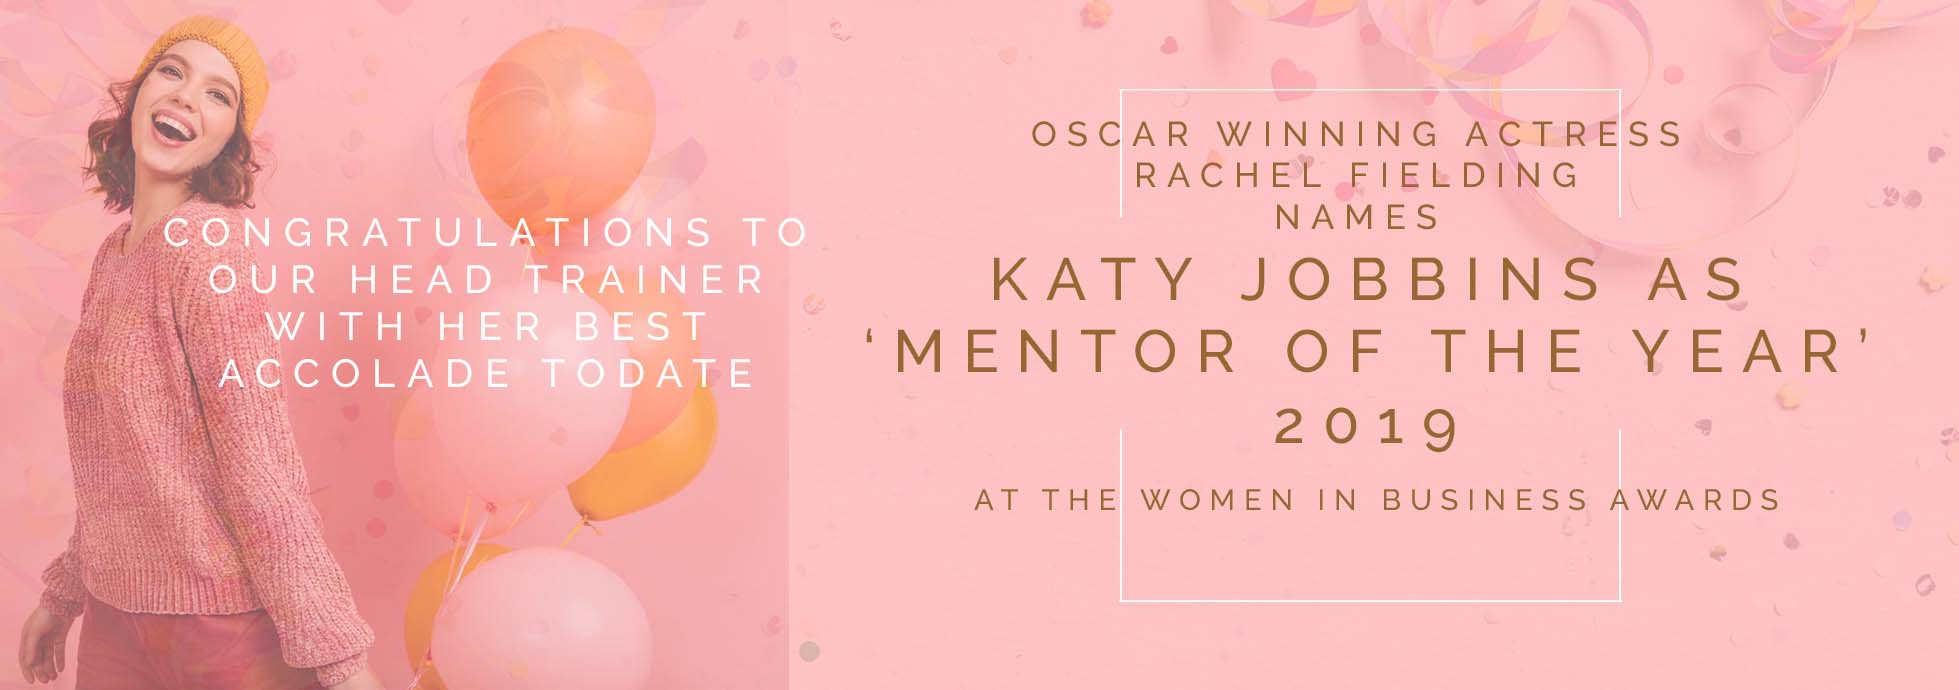 Katy Jobbins named Mentor of the Year for Permanent Makeup Training